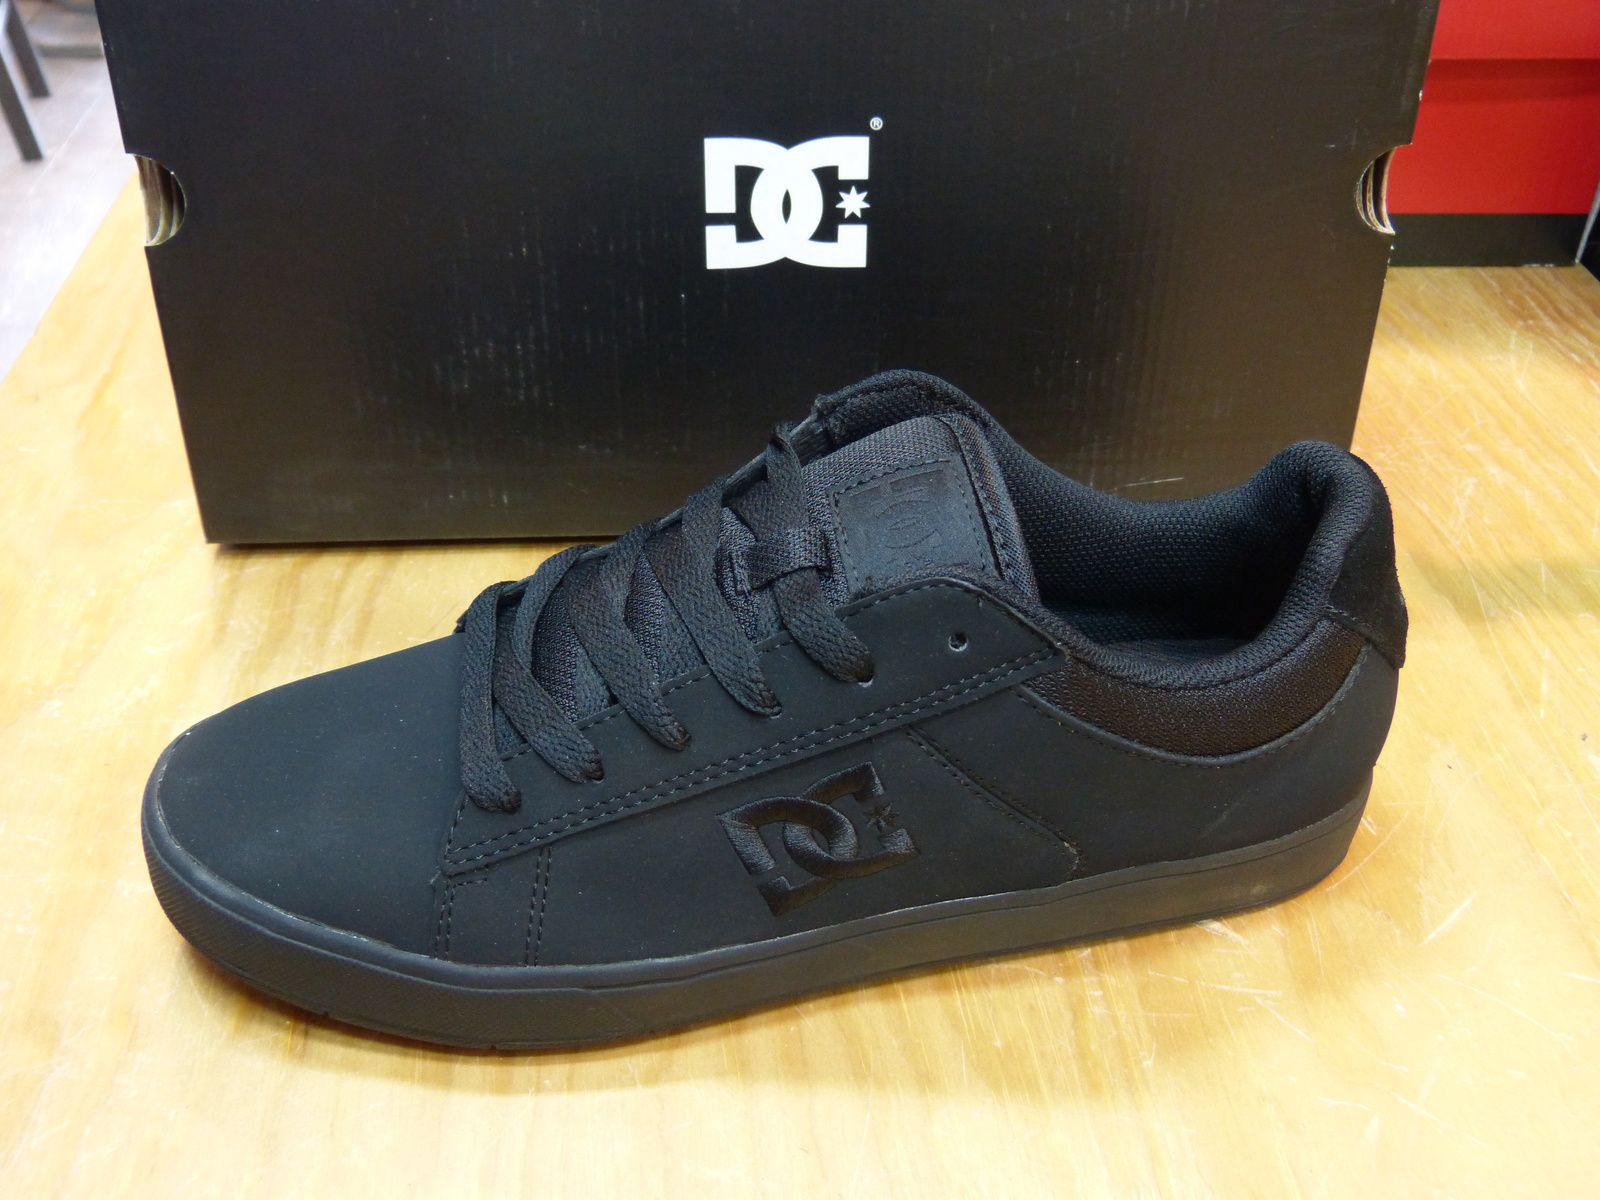 DC Shoes Fall 2014 part 2